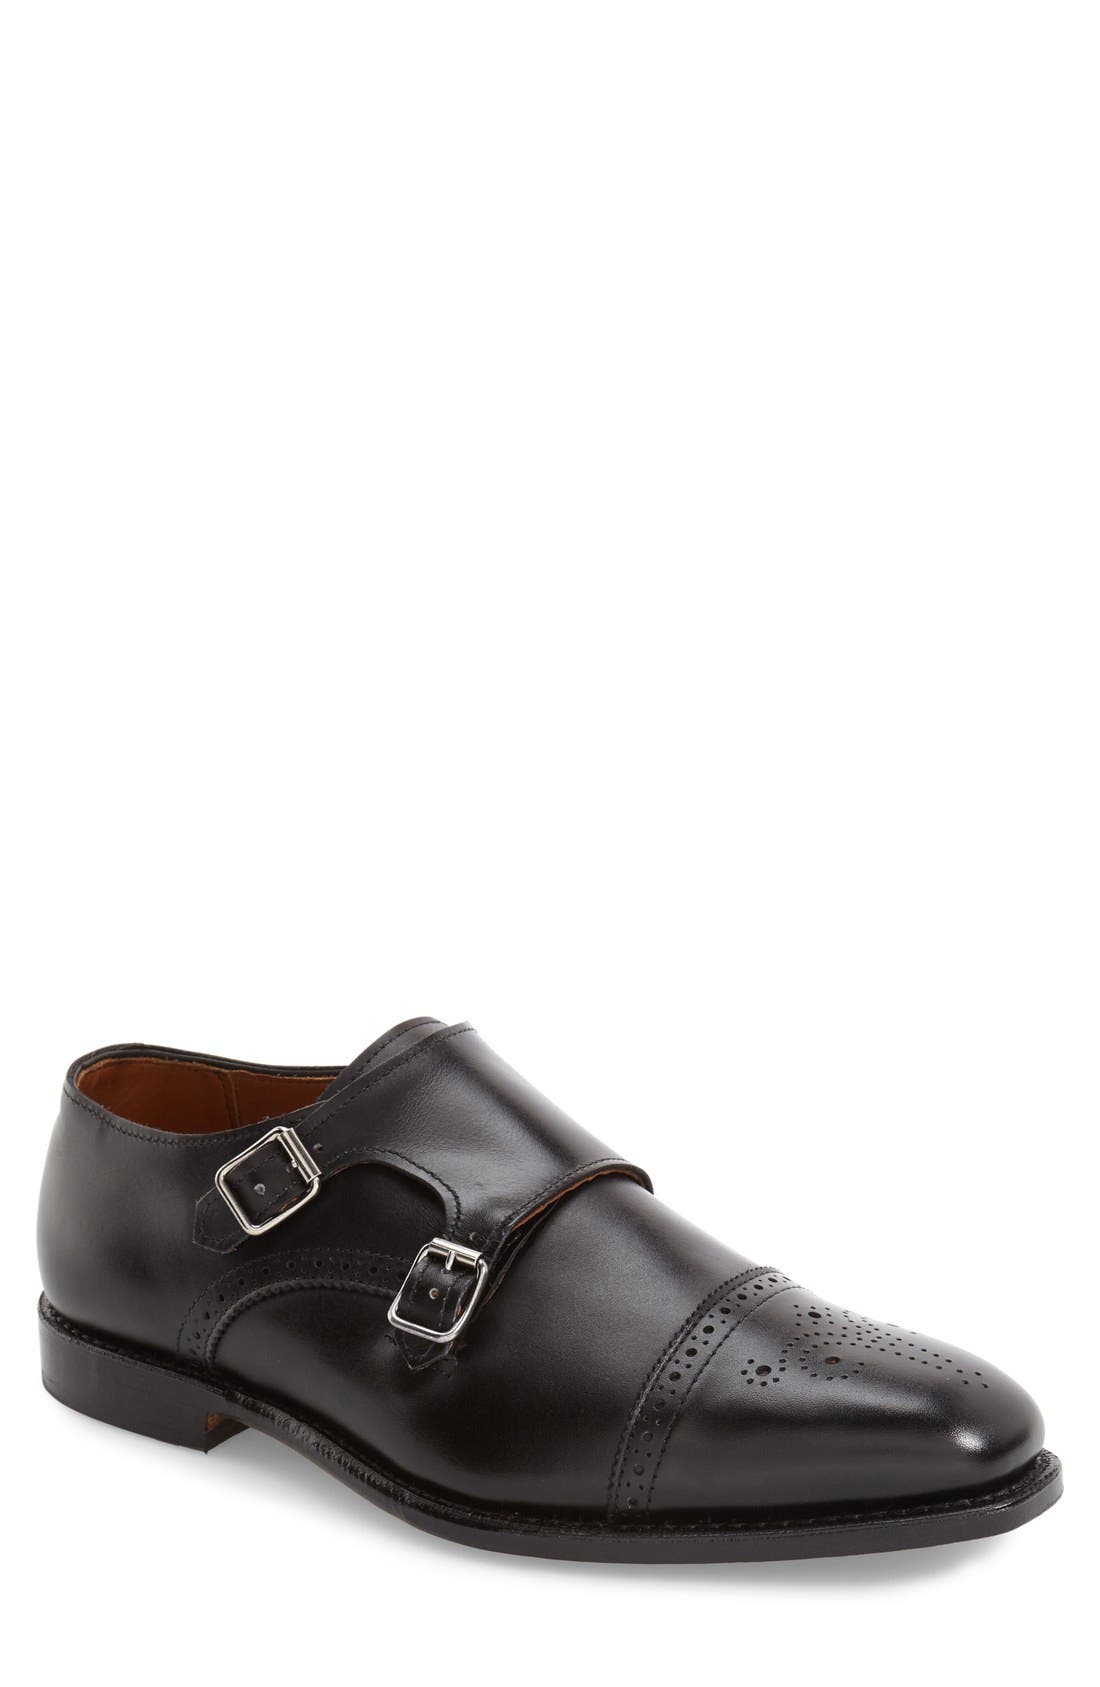 ALLEN EDMONDS, 'St. Johns' Double Monk Strap Shoe, Alternate thumbnail 5, color, BLACK LEATHER